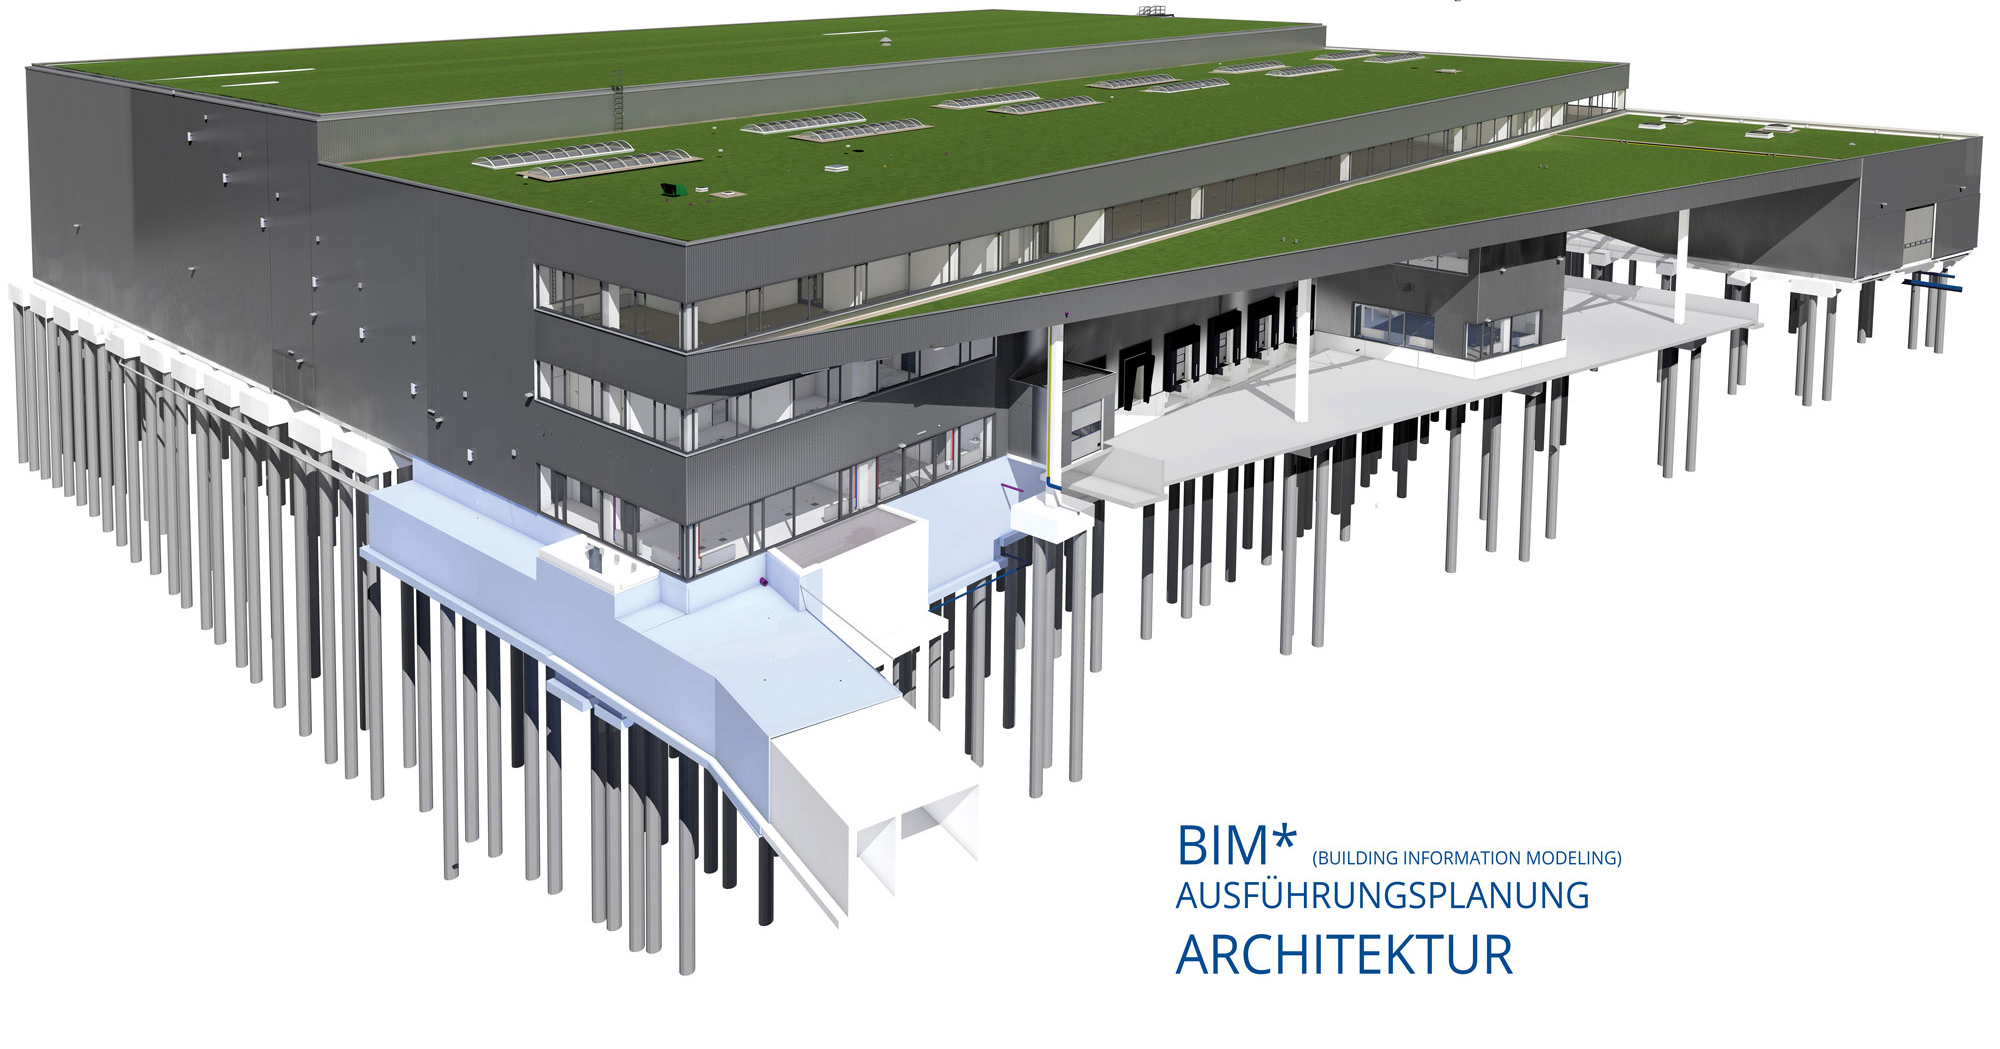 BIM-Logistikzentrum-Architektur